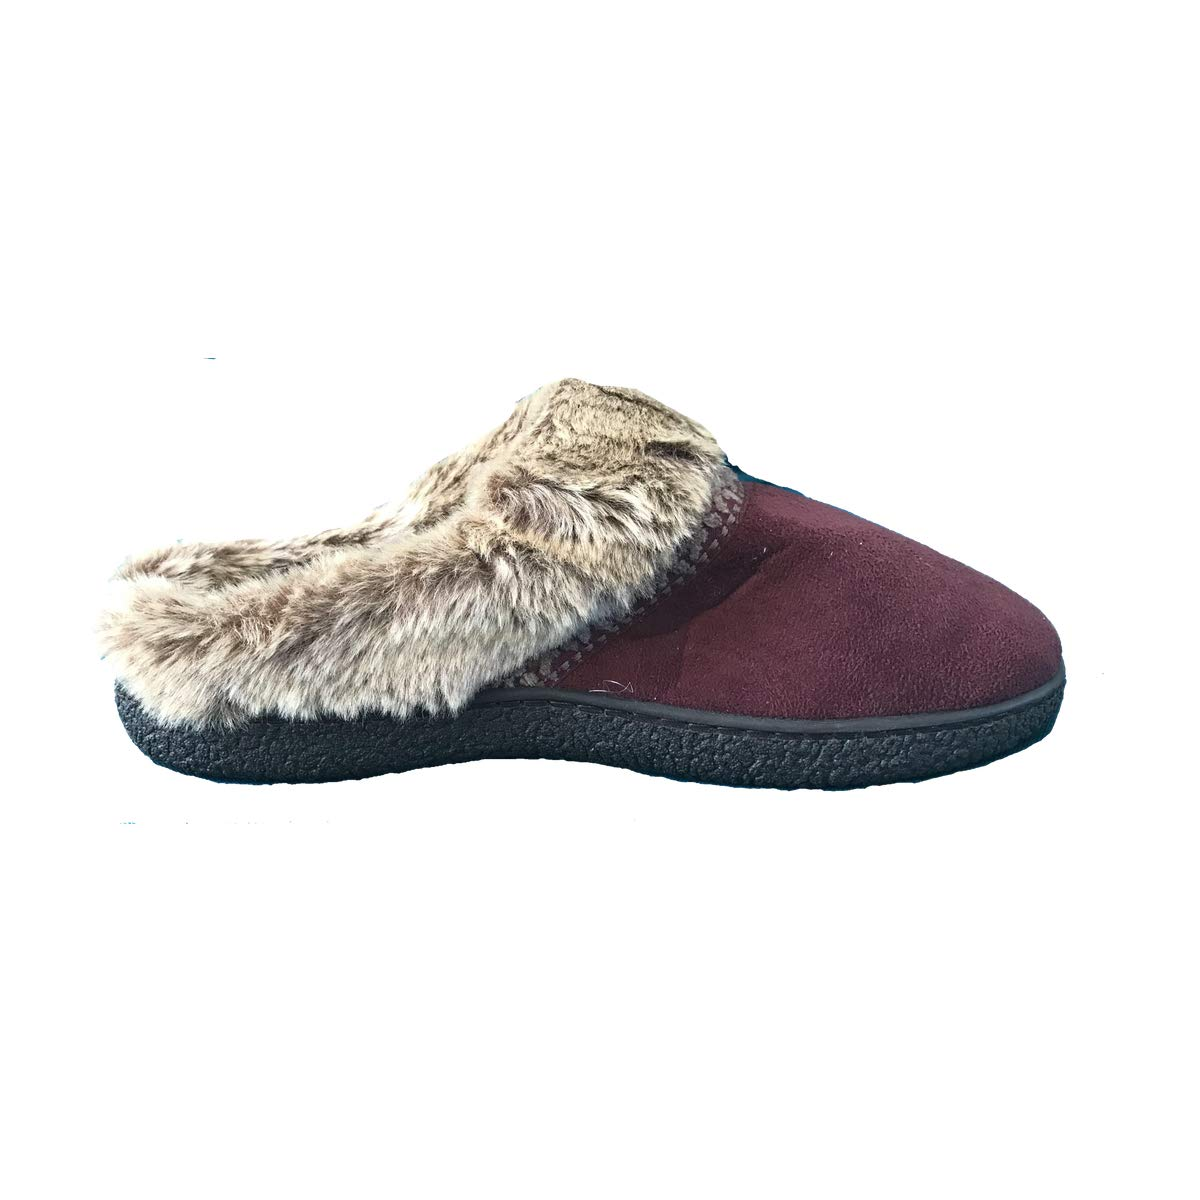 ISOTONER Women's Microsued Hoodback Slipper